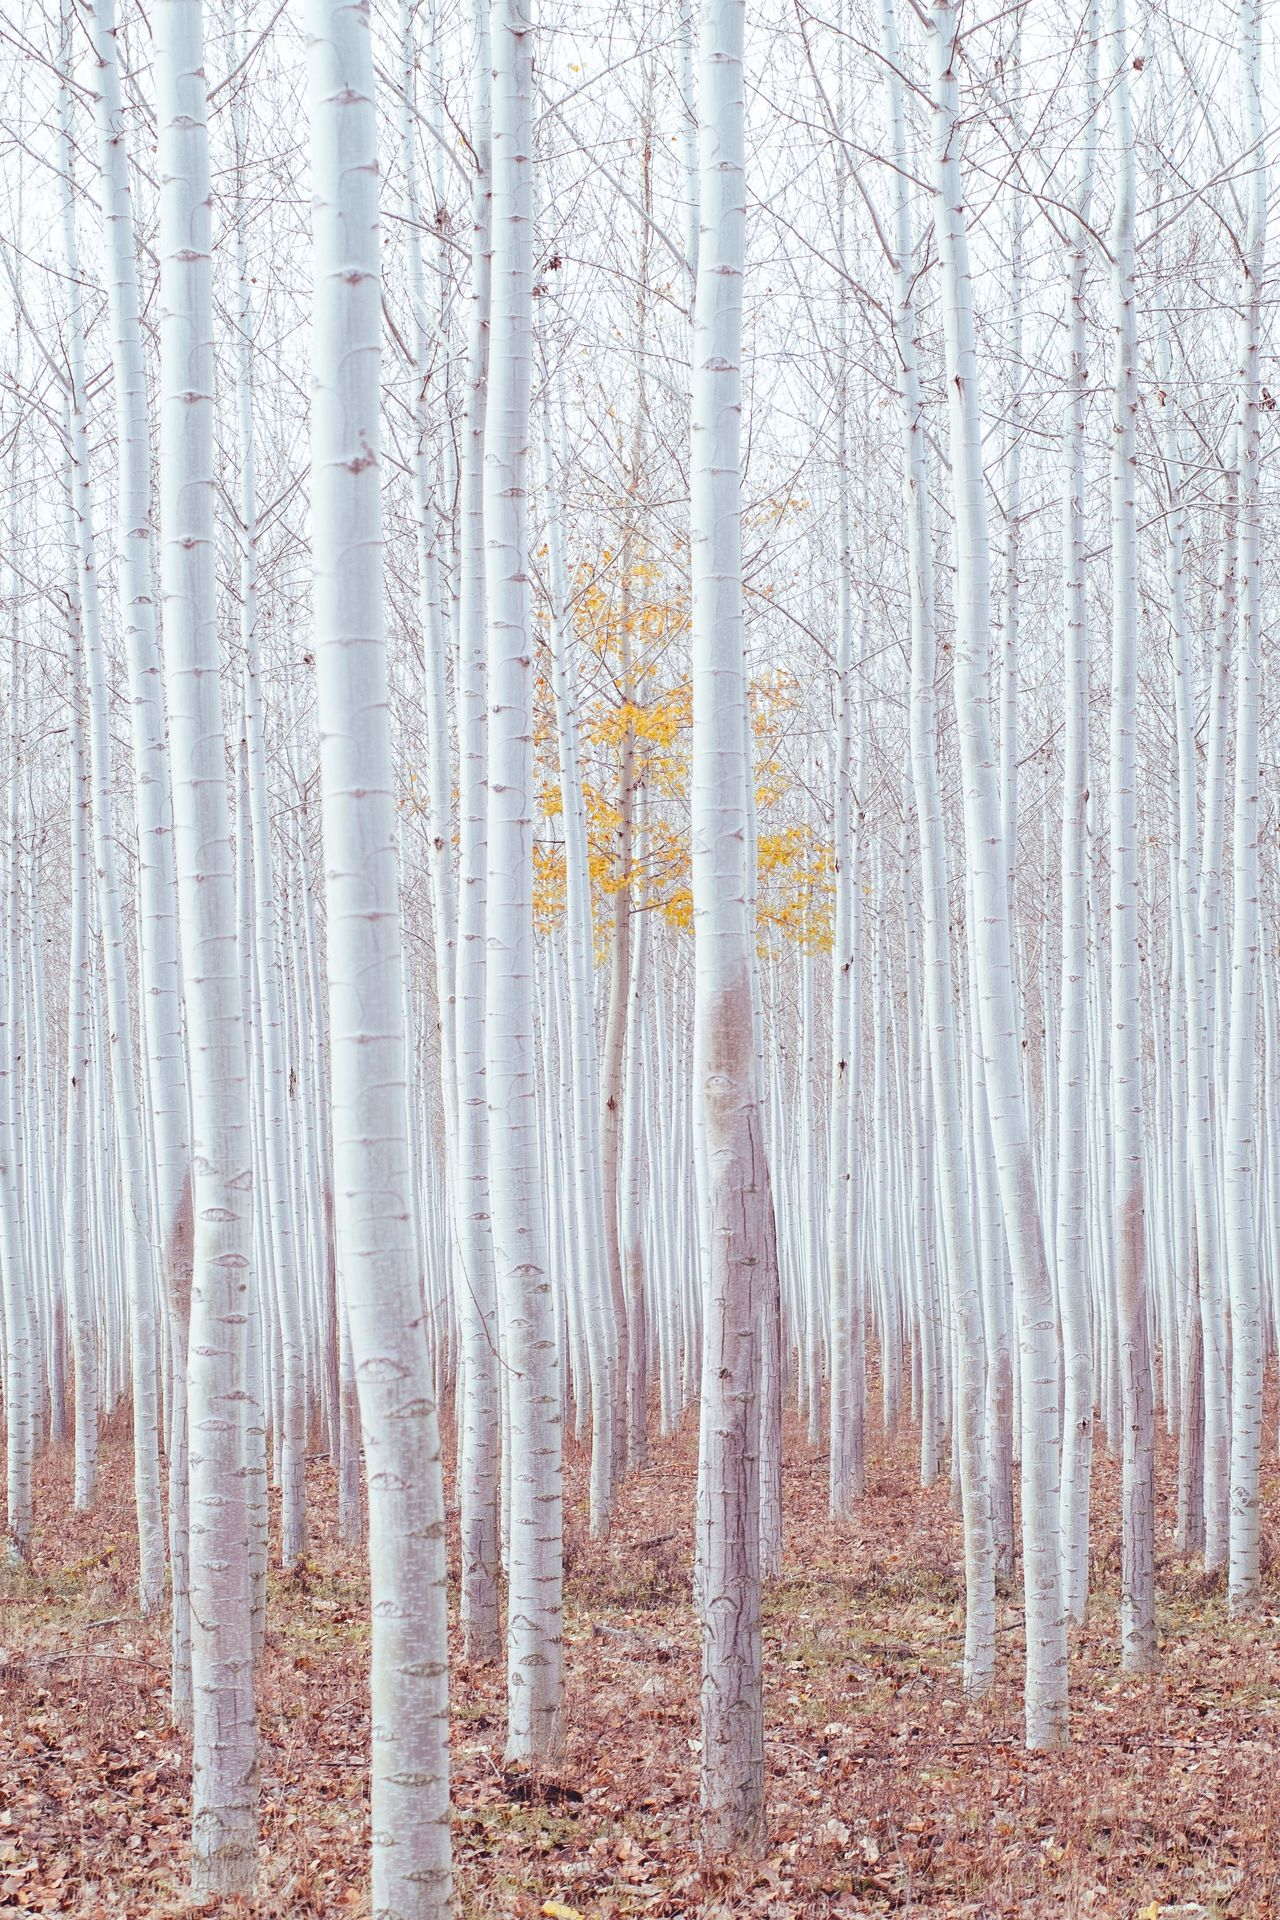 Birch trees at forest